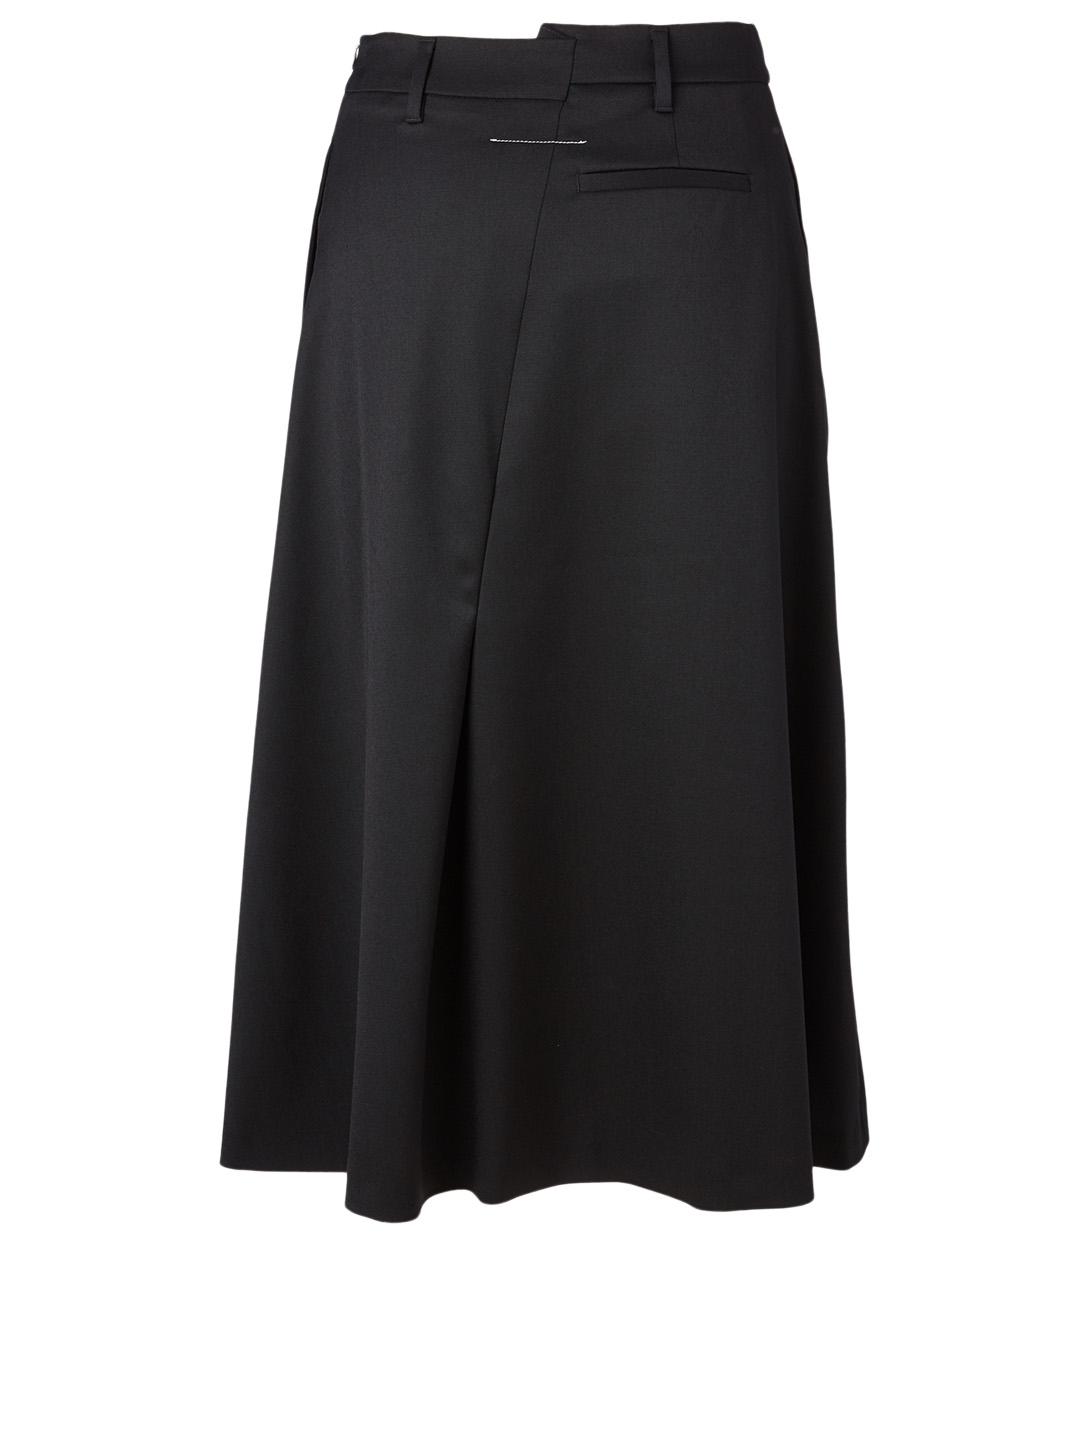 MM6 MAISON MARGIELA Asymmetric Midi Skirt Women's Black